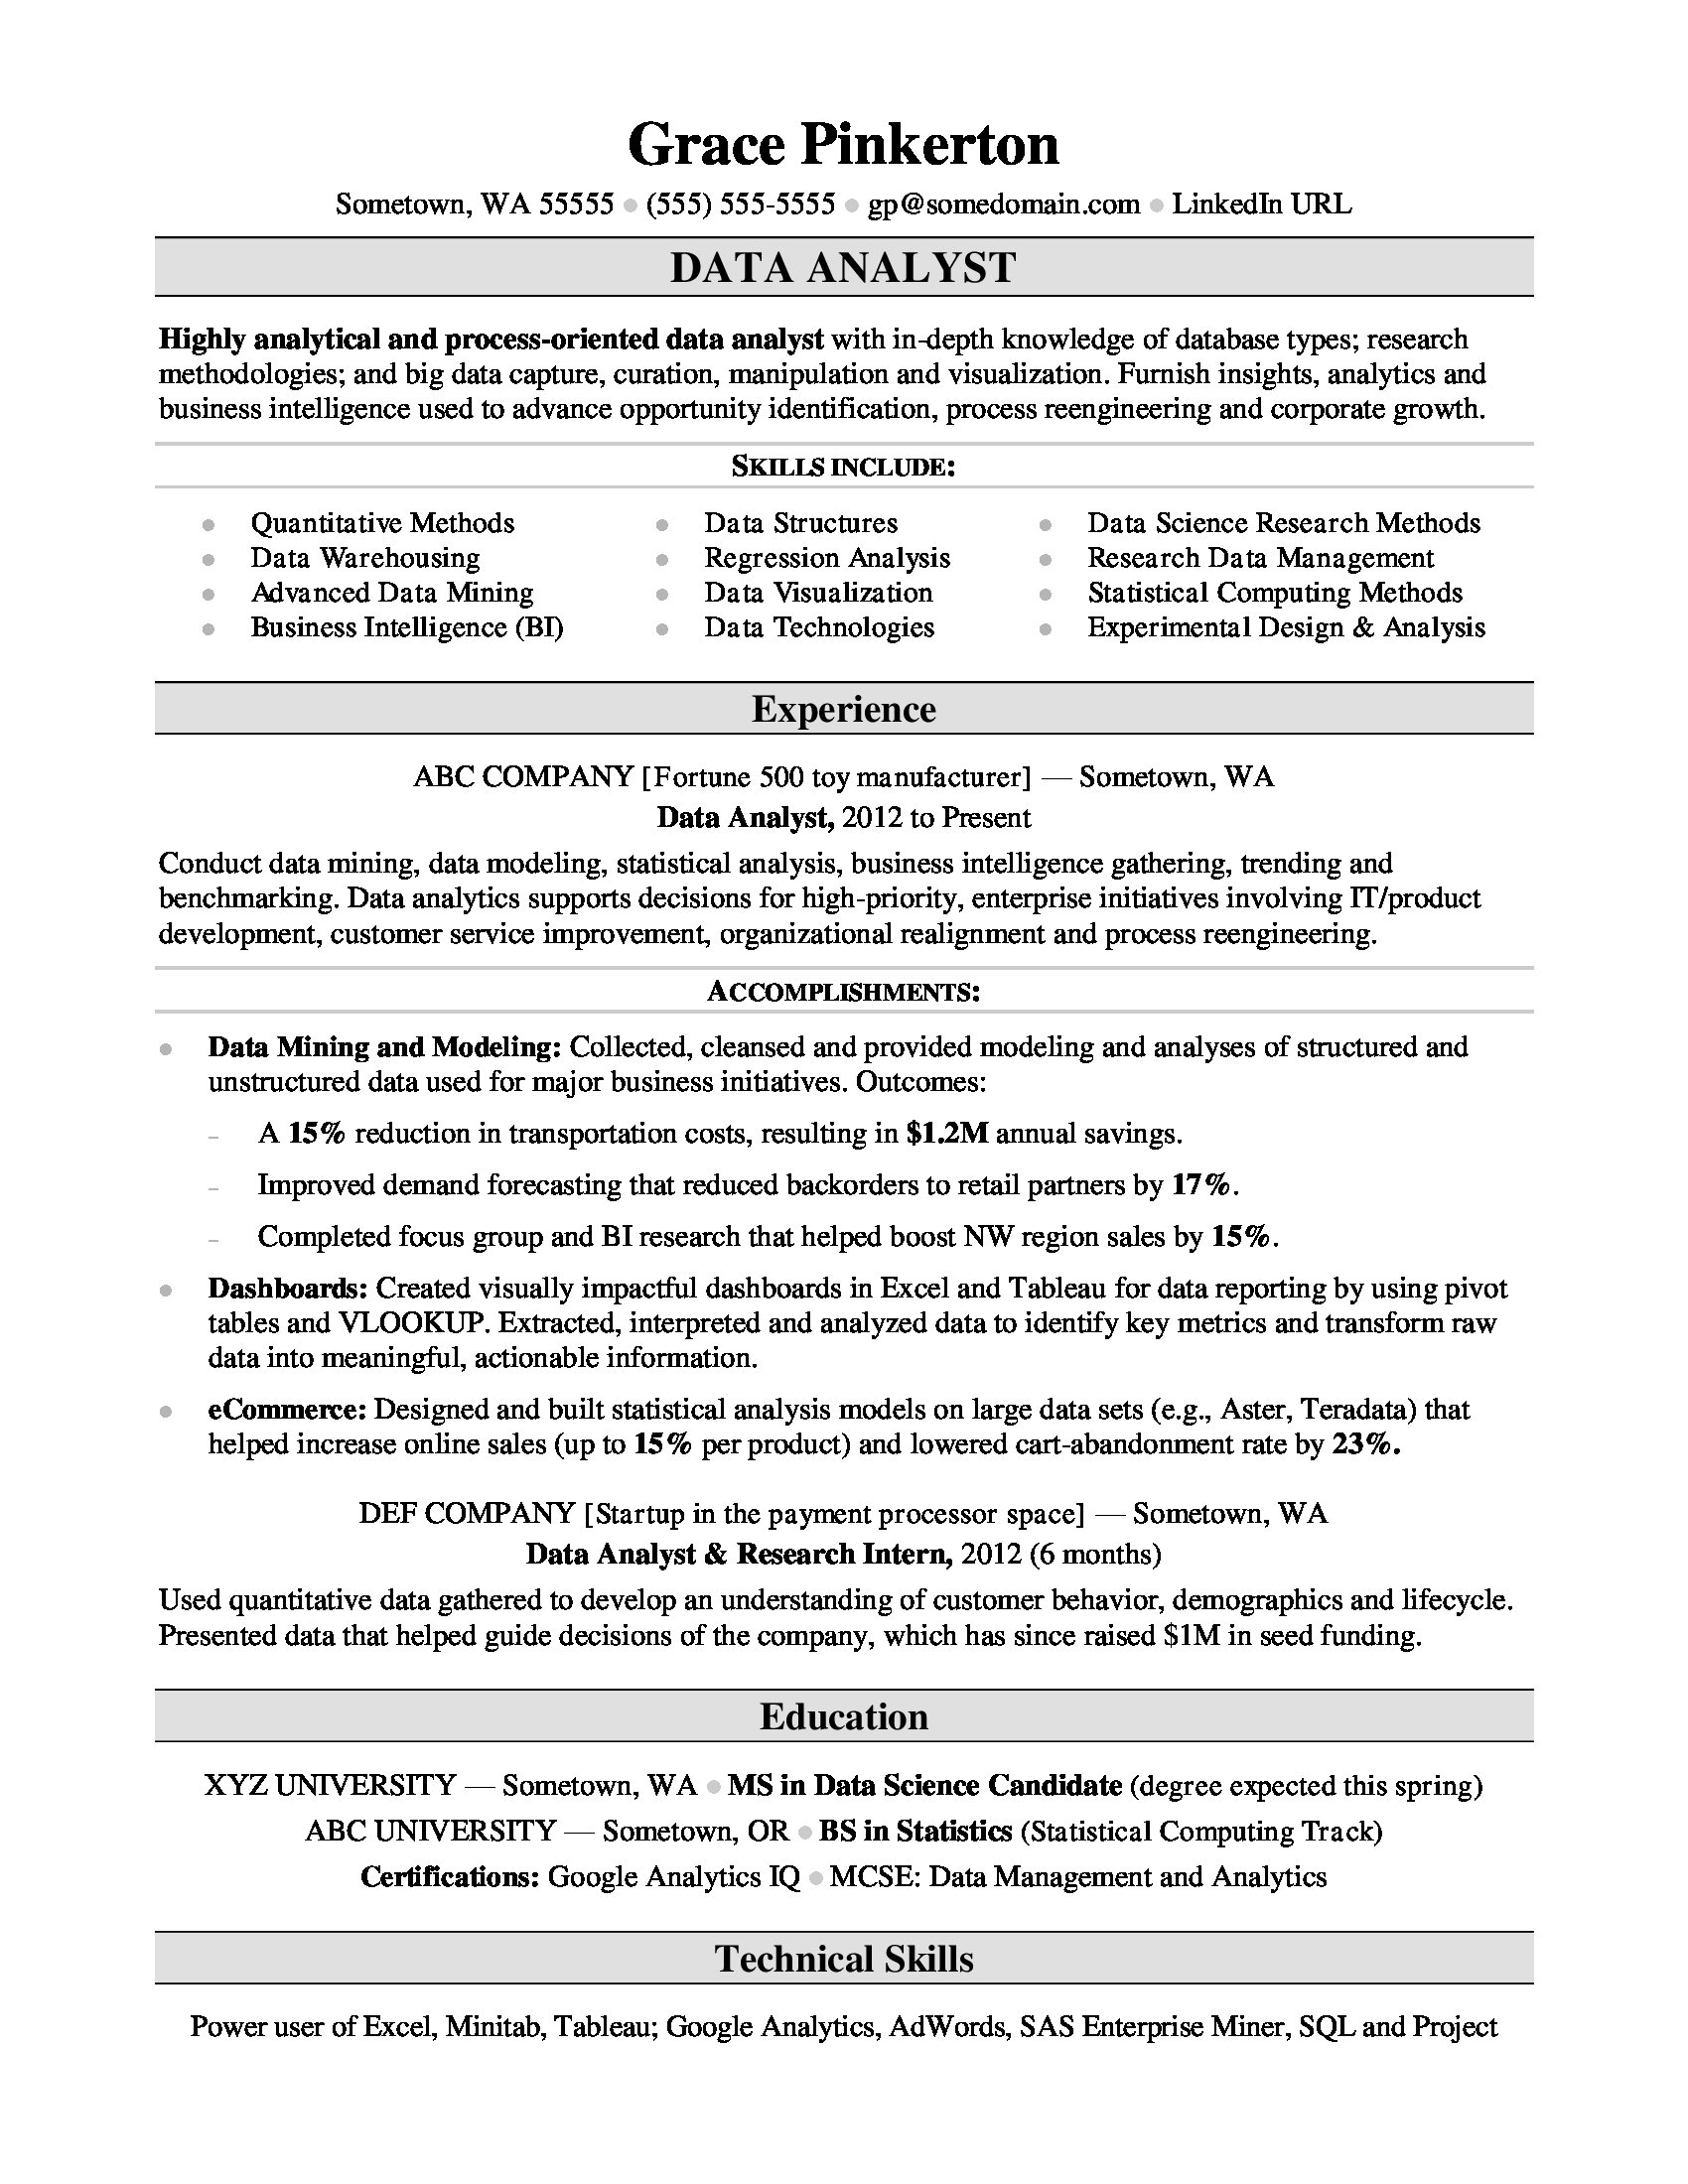 data analyst resume sample monster business intelligence keywords dataanalyst preschool Resume Business Intelligence Resume Keywords